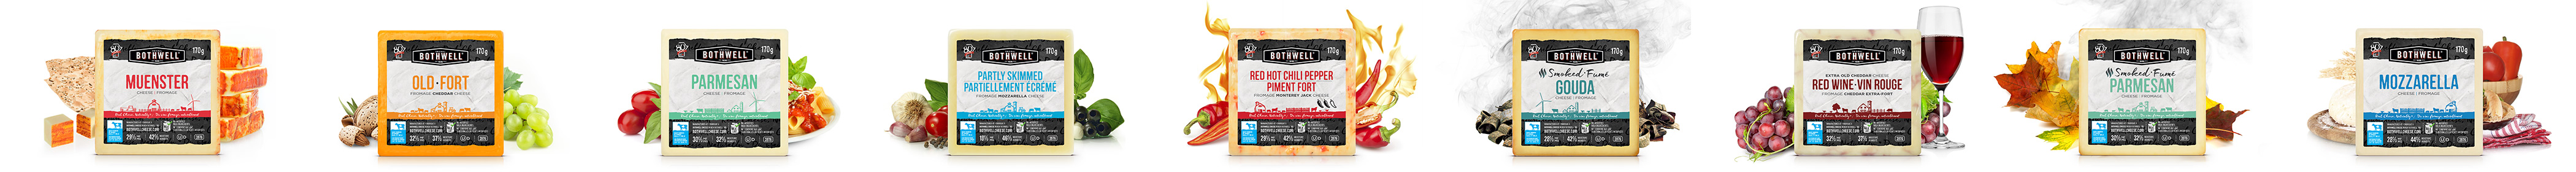 Even More Bothwell Products